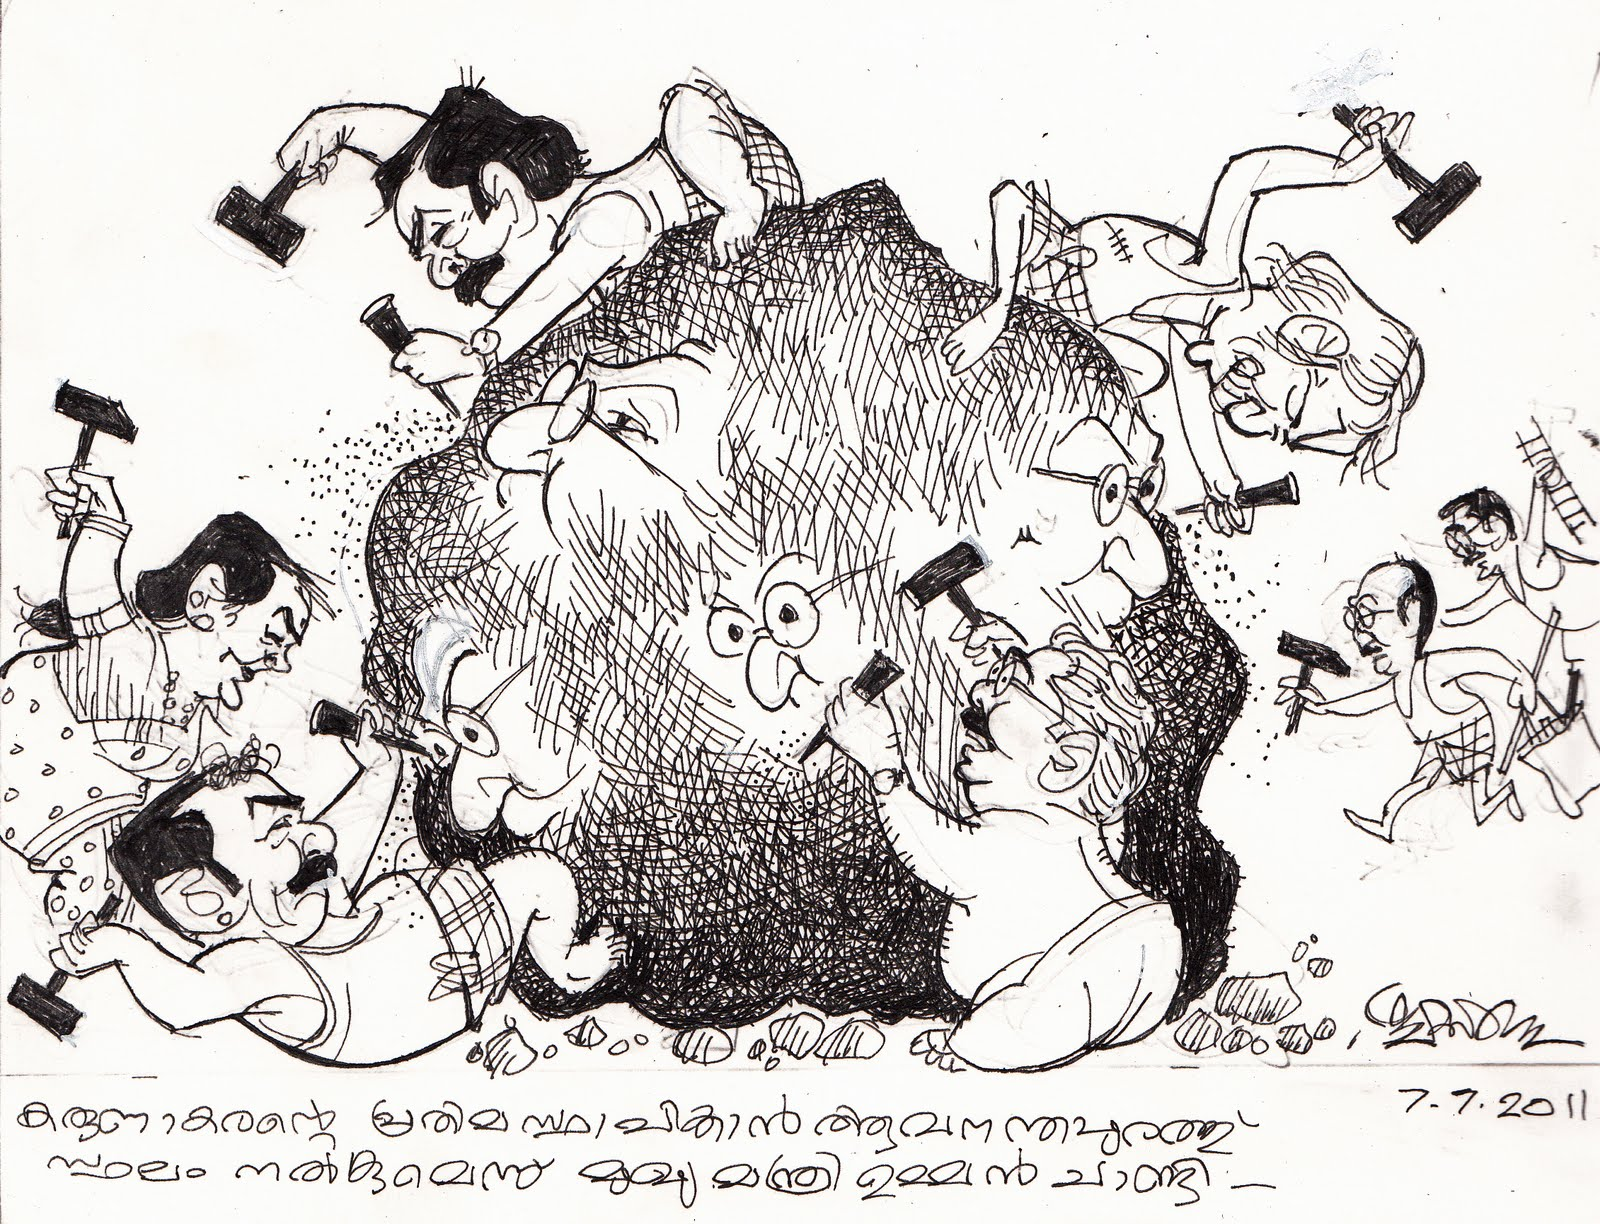 A Blog for Cartoonist Yesudasan: Friday, July 15, 2011